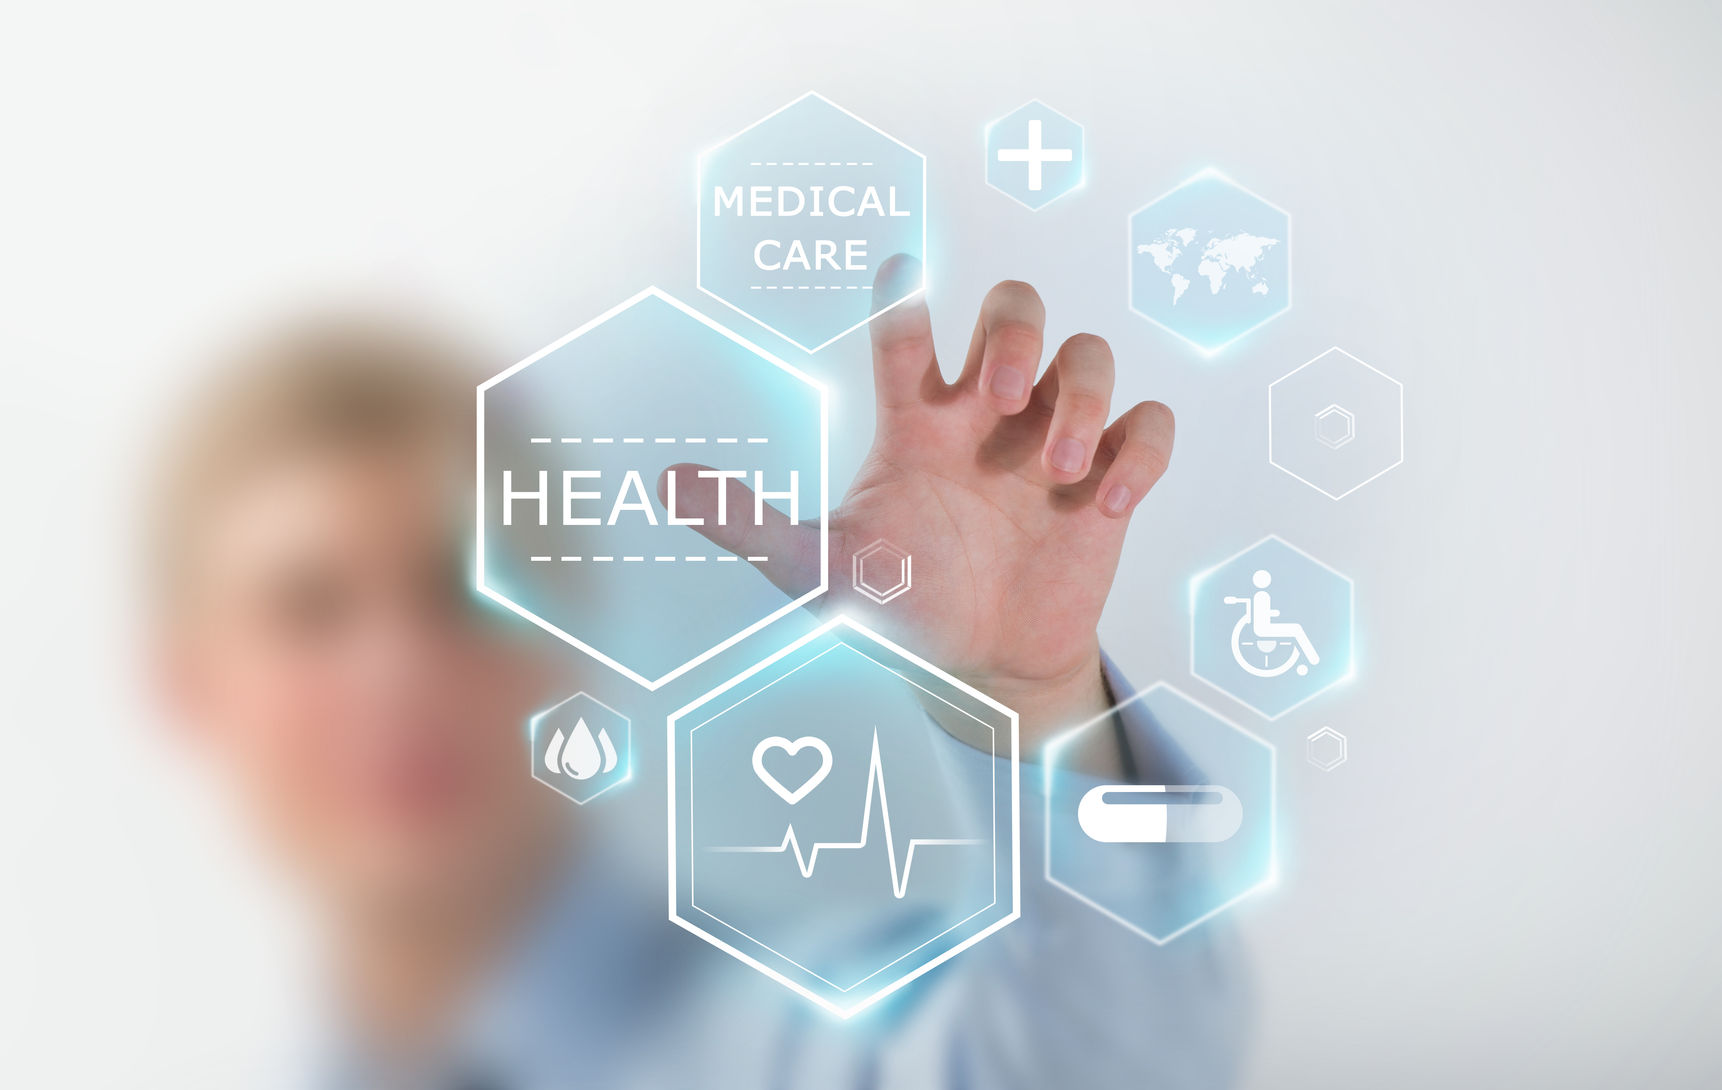 technology healthcare future health medical care trending